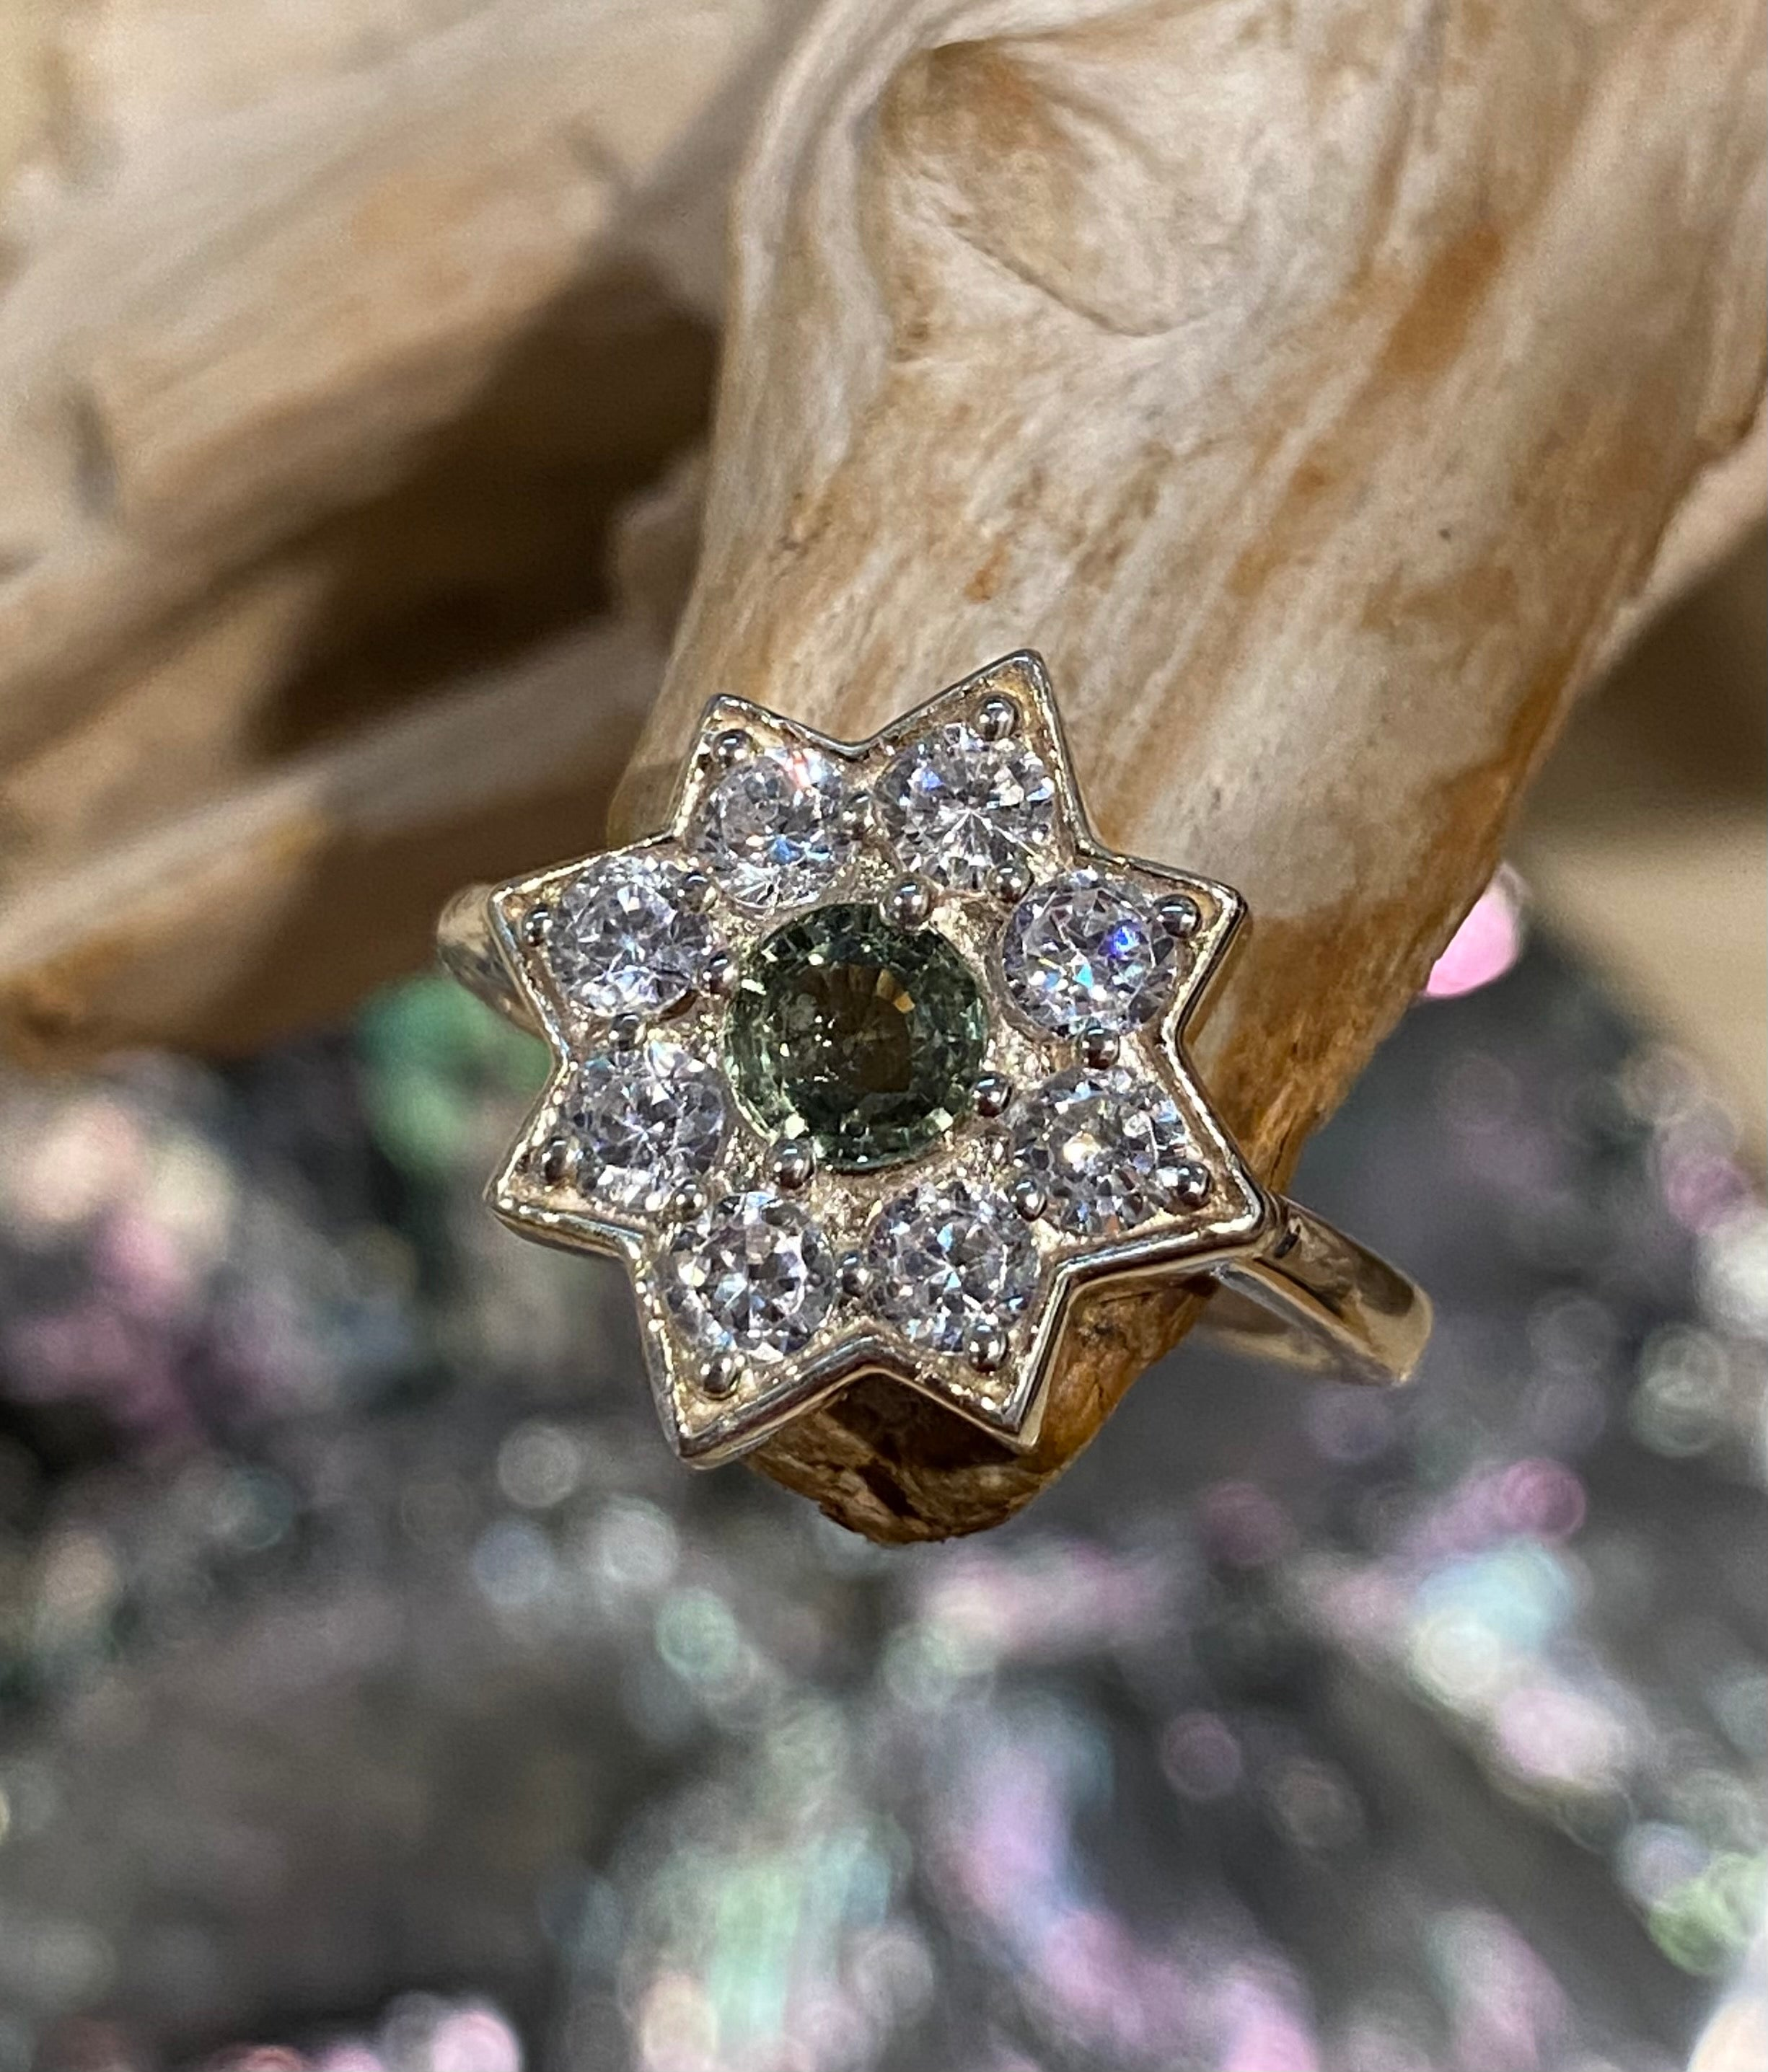 Wise One - Natural green sapphire, cubic zirconia star 925 sterling silver ring - Size 8